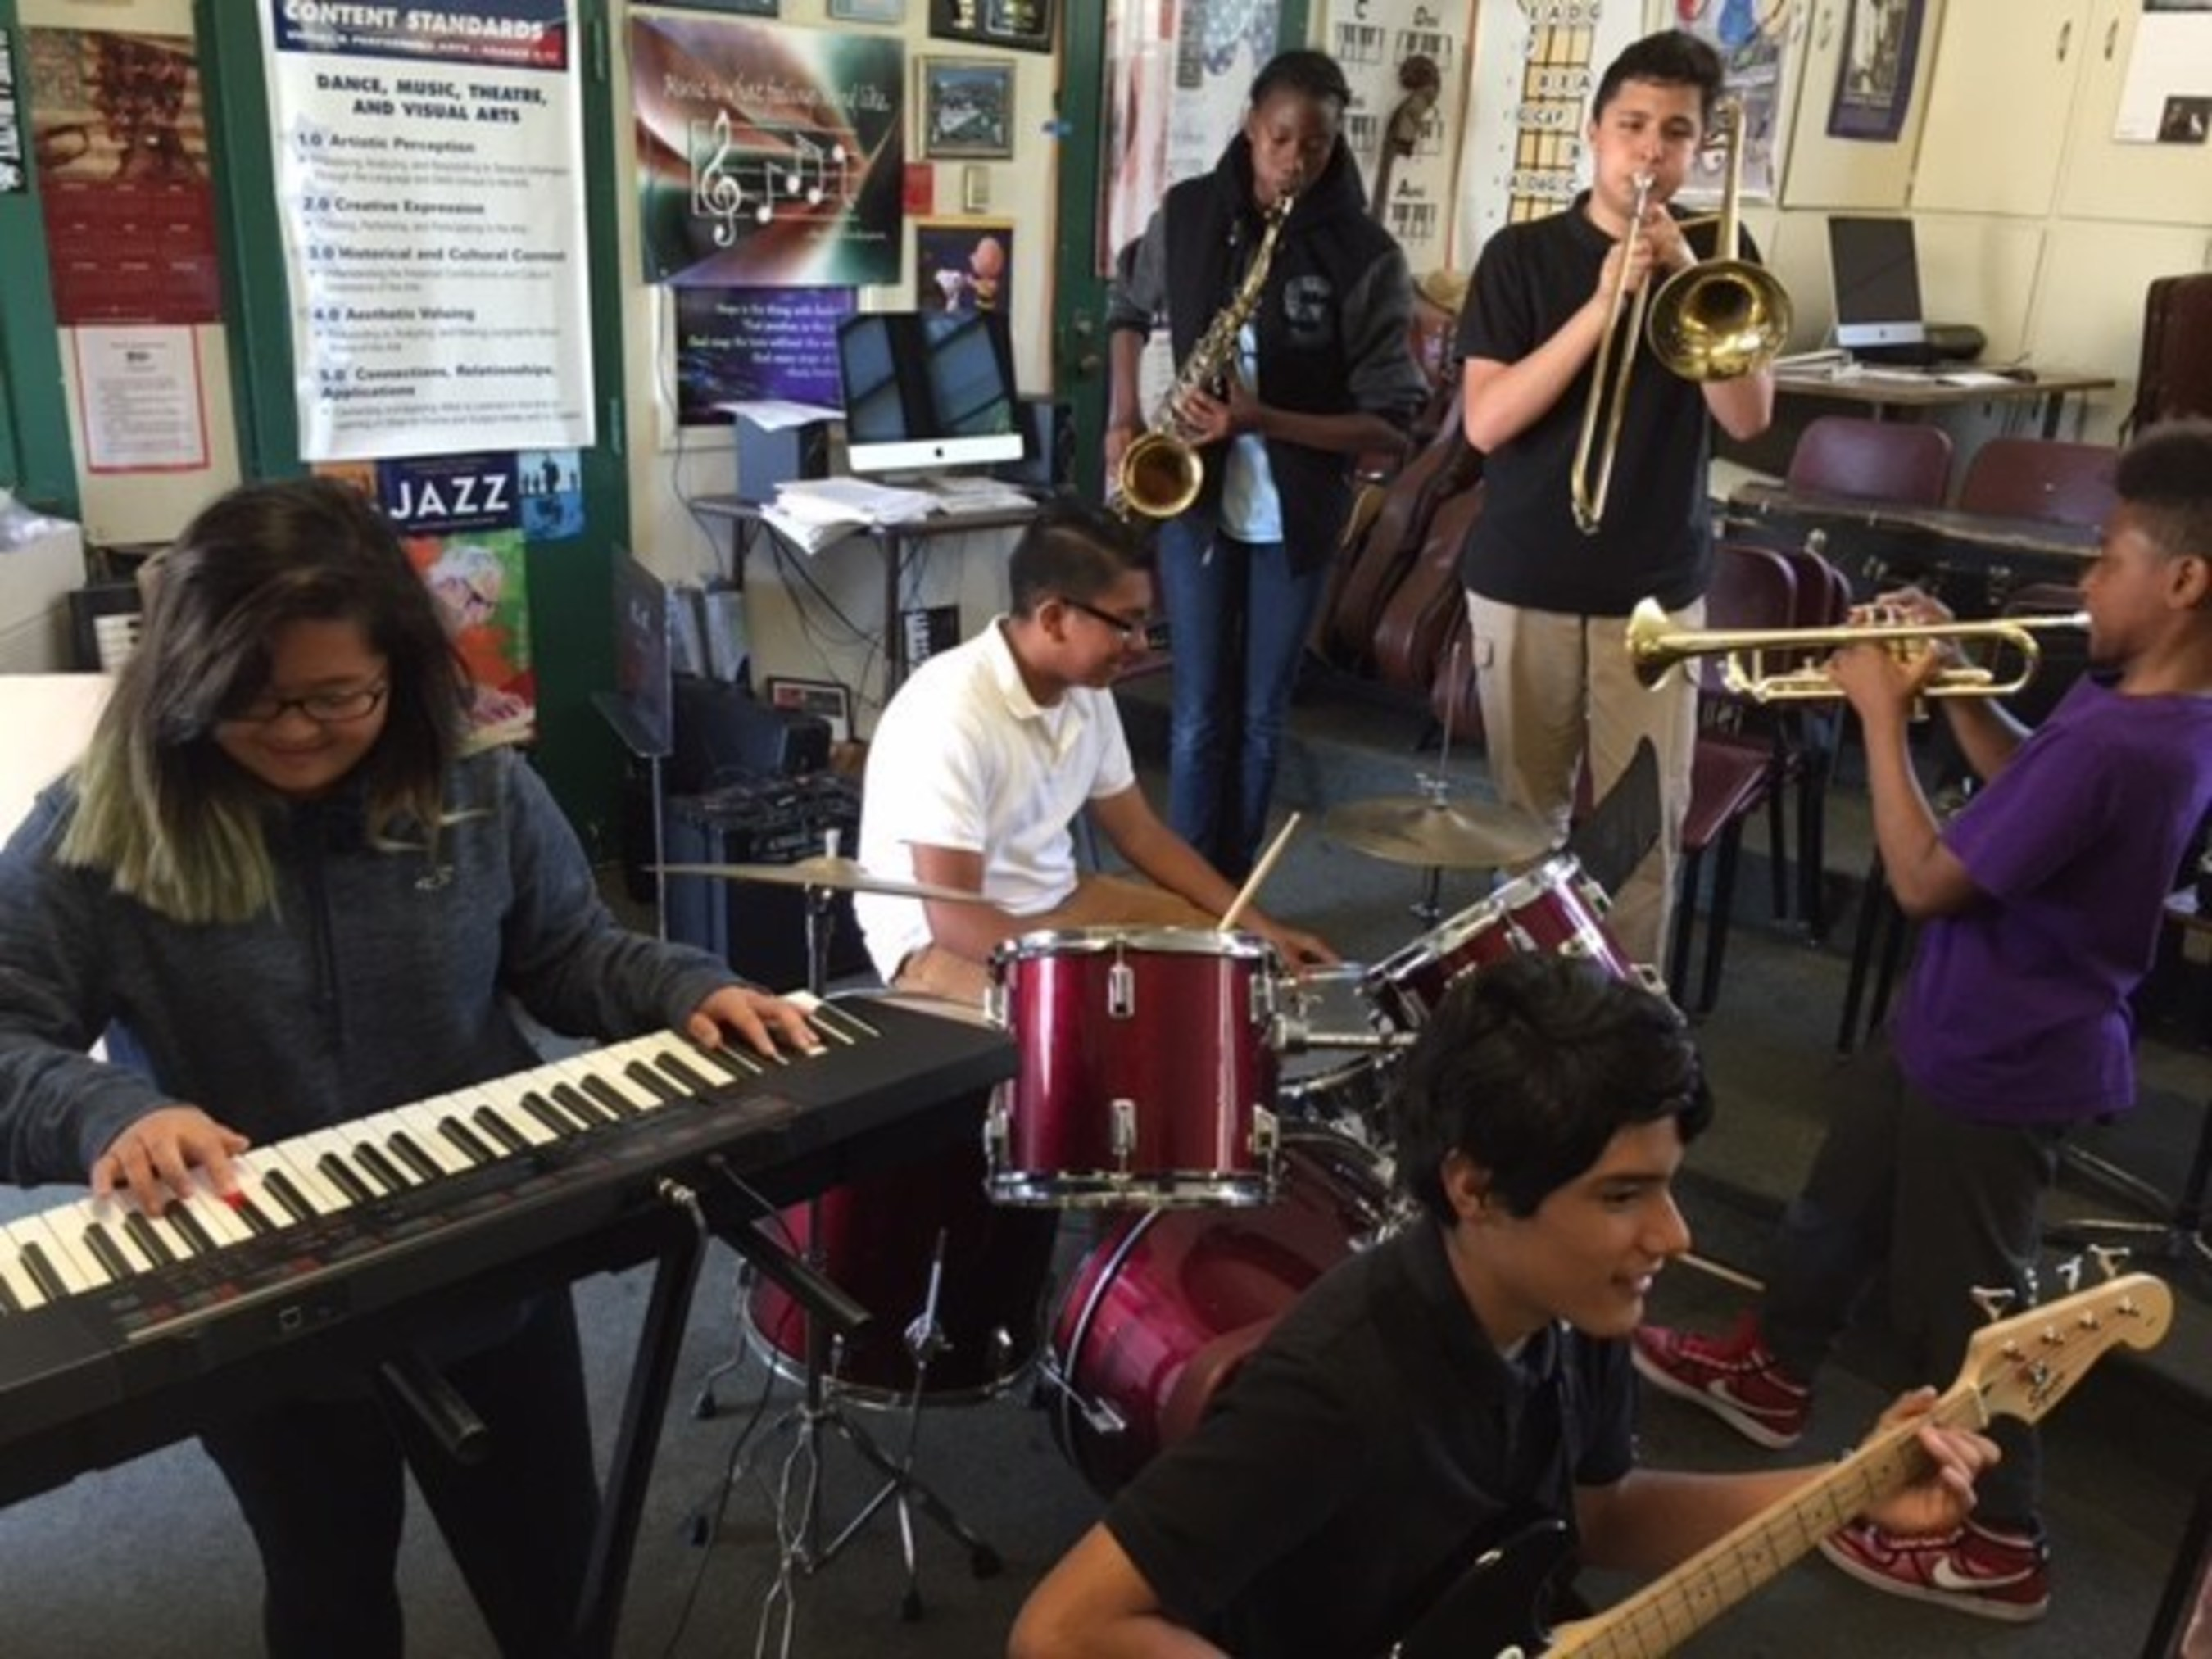 Casio Donates 60 Electronic Keyboards and Pianos to The Mr. Holland's Opus Foundation for Title I-Funded schools including the Eliot Arts Magnet in the Pasadena, CA Unified School District.